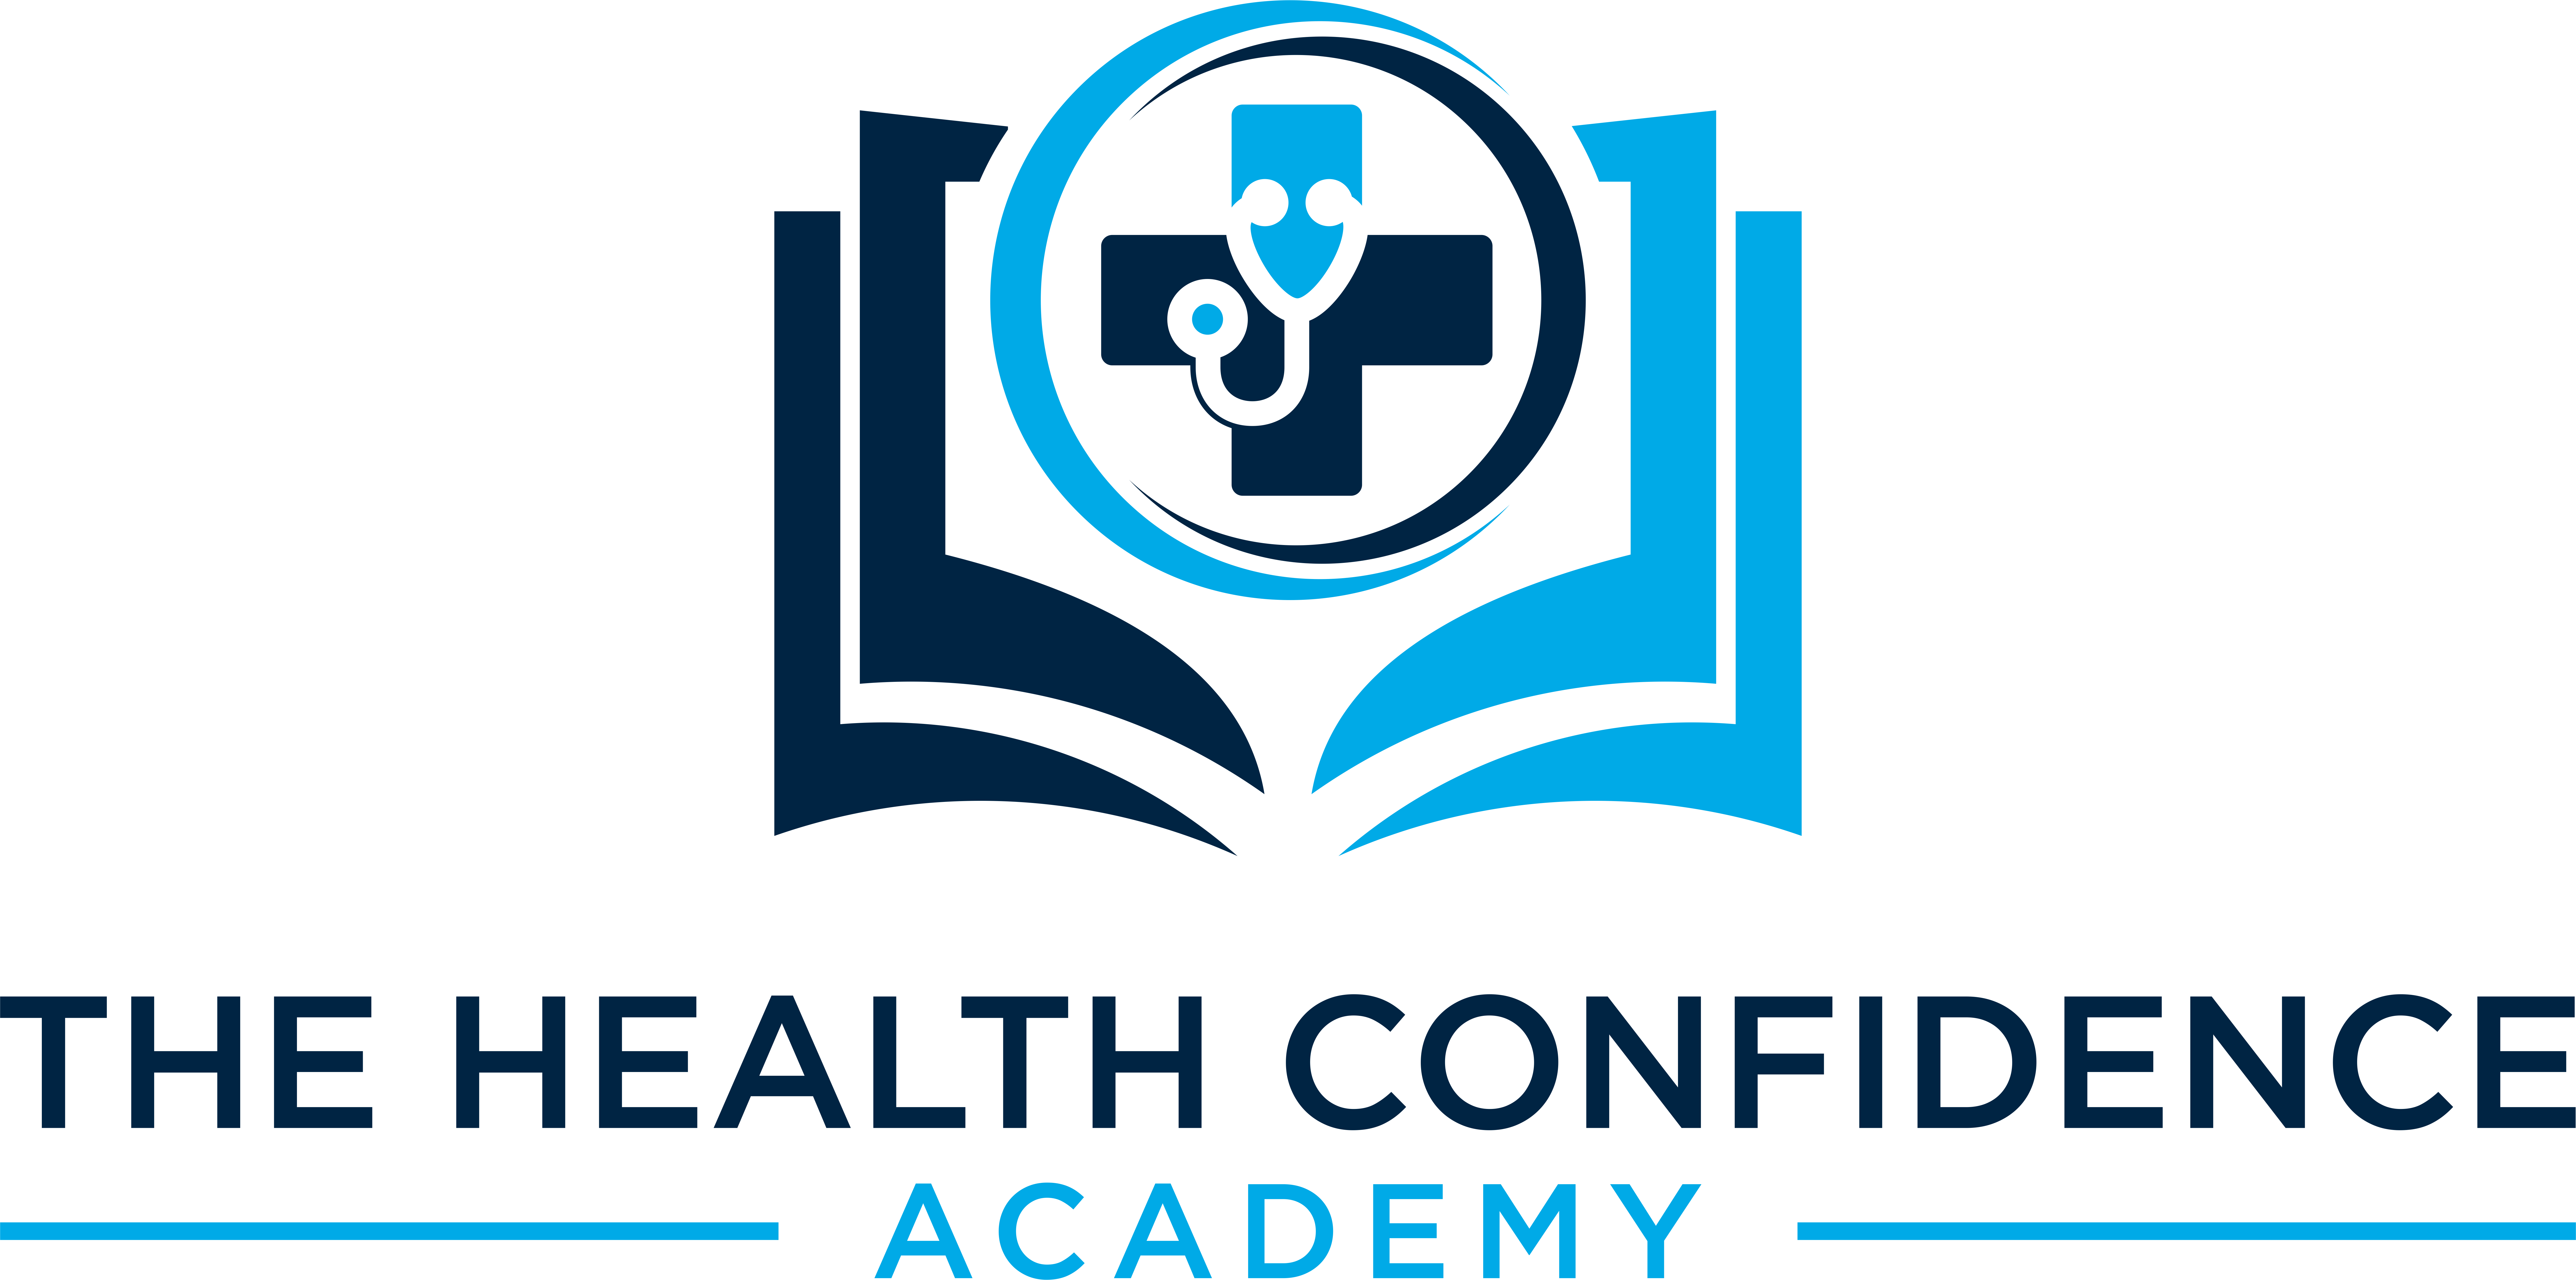 Help people be more confident with their health